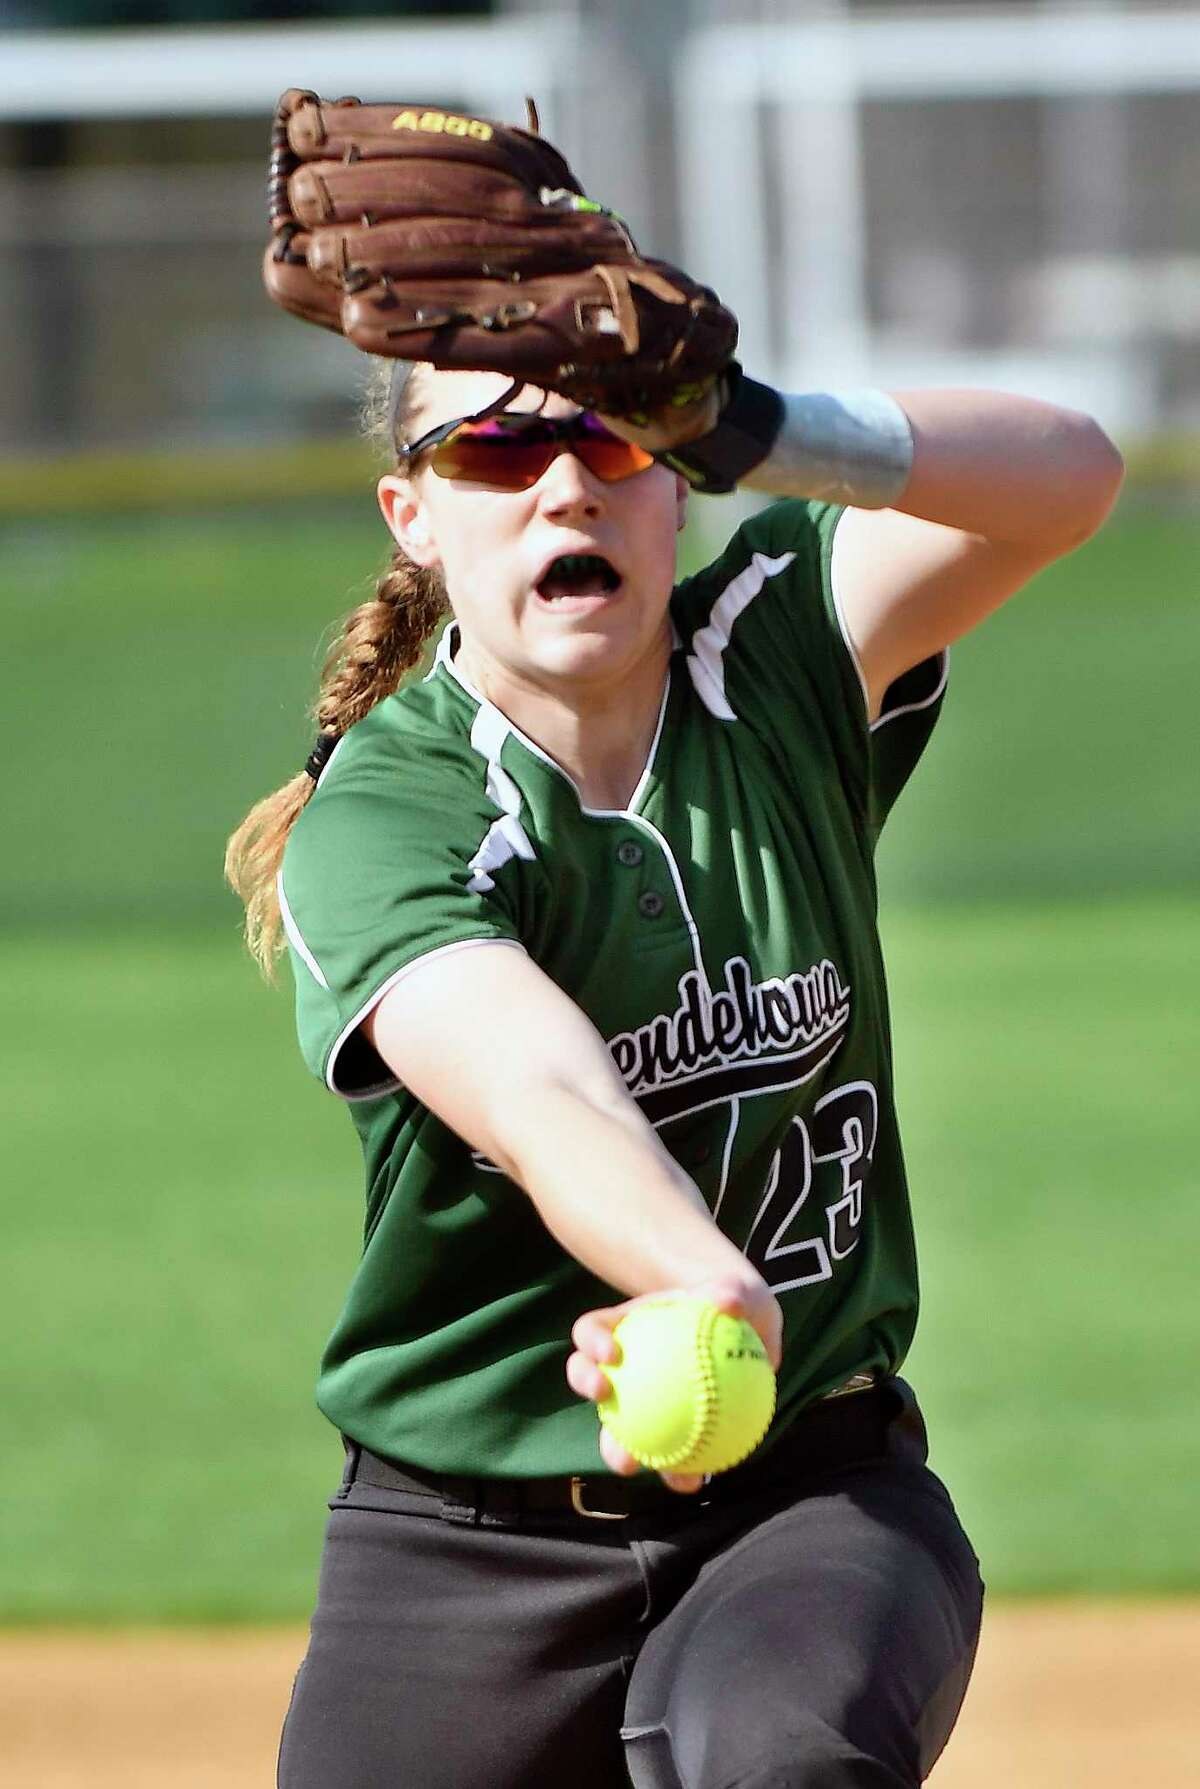 Shenendehowa's Nicole McCarvill (23) pitches against Colonie during a Section II Class AA girls high school softball game in Clifton Park, N.Y., Monday, May 1, 2017. (Hans Pennink / Special to the Times Union) ORG XMIT: HP103